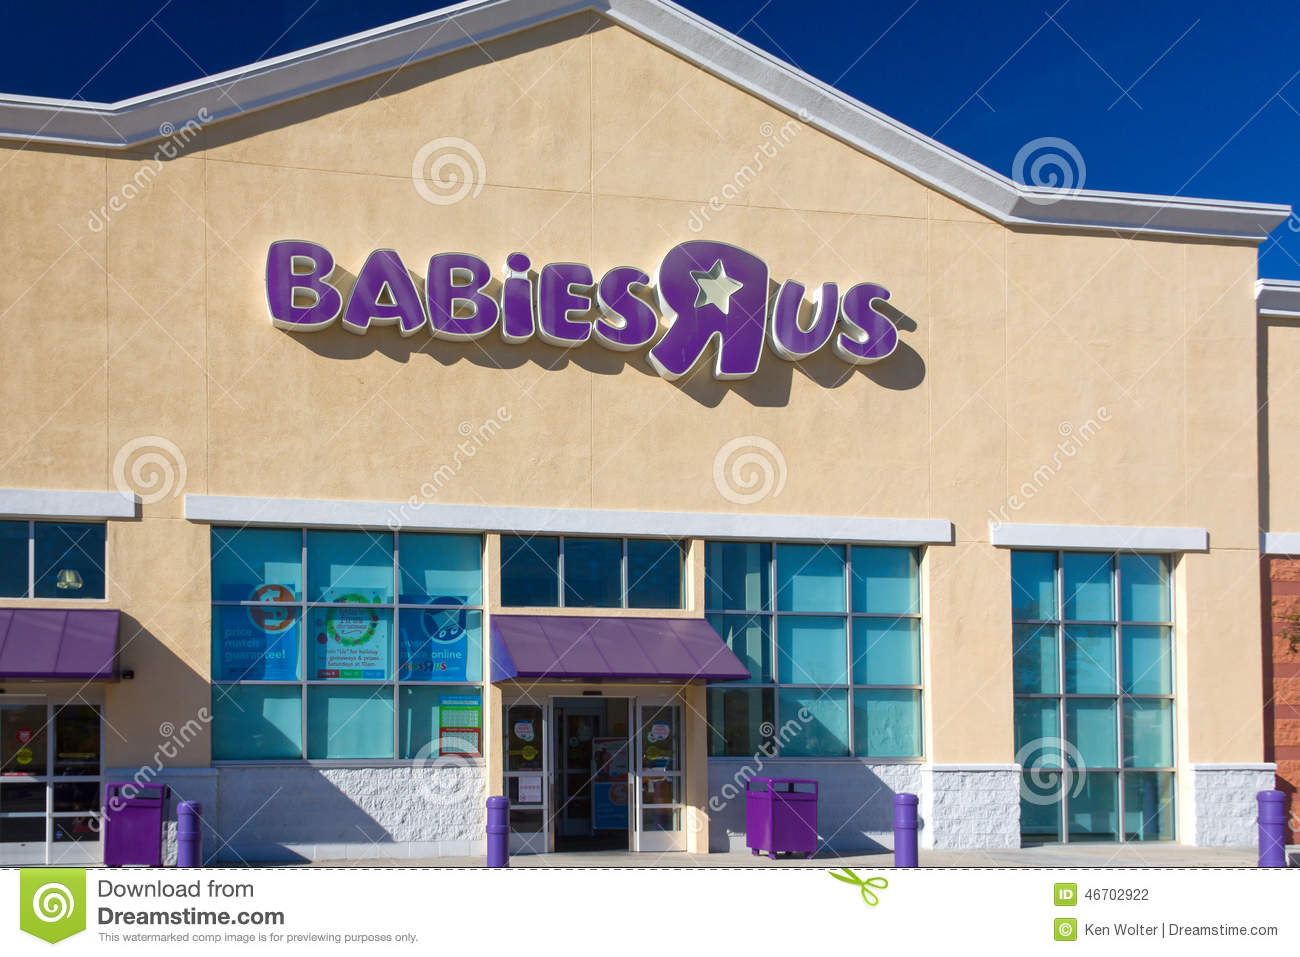 The Baby Store at Amazon is a one-stop destination for all your baby's needs. From popular brands like Fisher-Price and Skip Hop, to best-in-class brands like Philips AVENT and Medela, the Amazon Baby Store can be counted on to have options for just about every need.